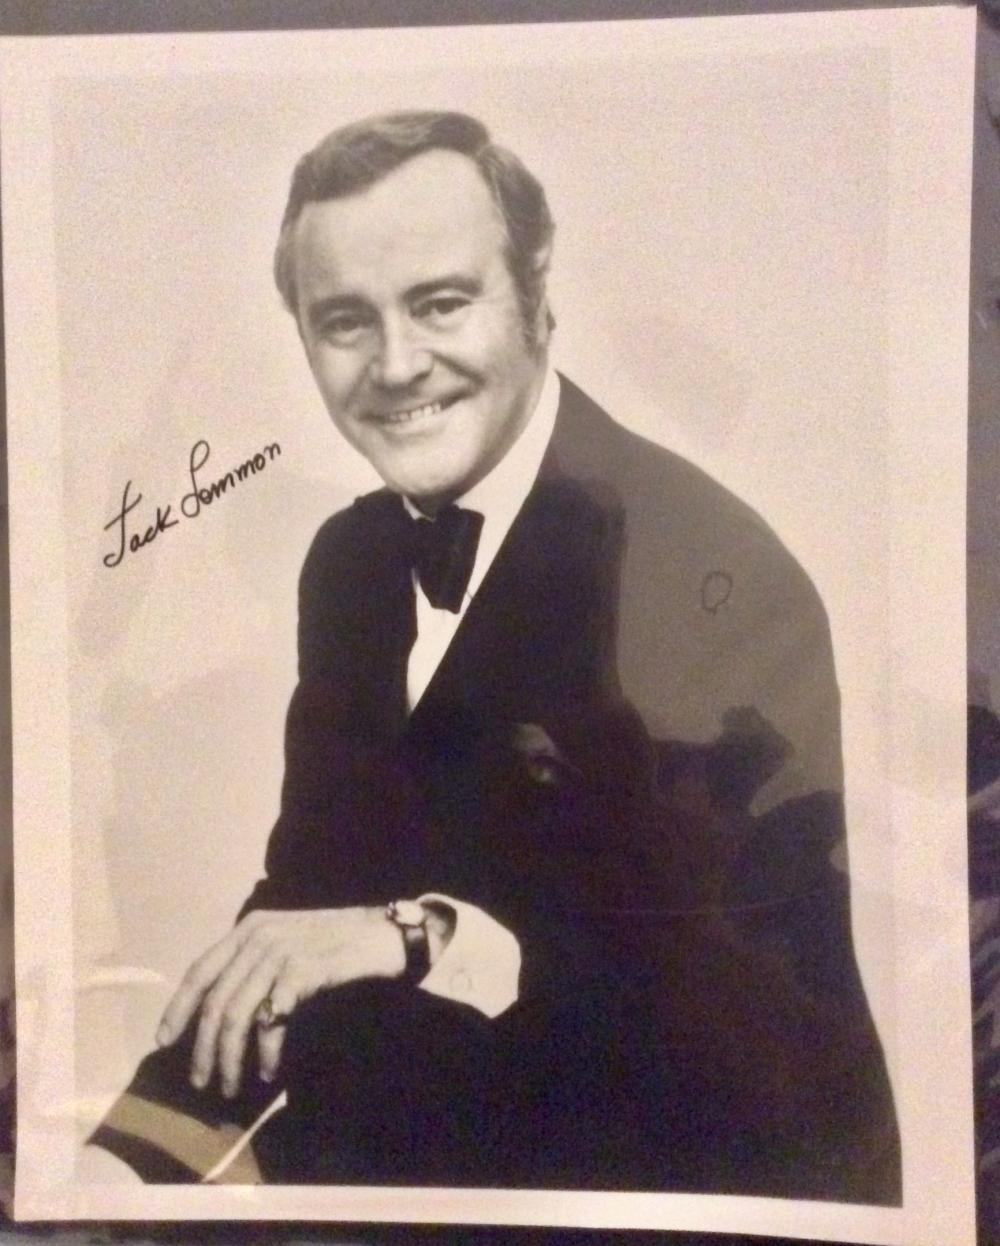 Jack Lemmon 8X10 Autographed Photo of Noted American Actor Jack Lemmon